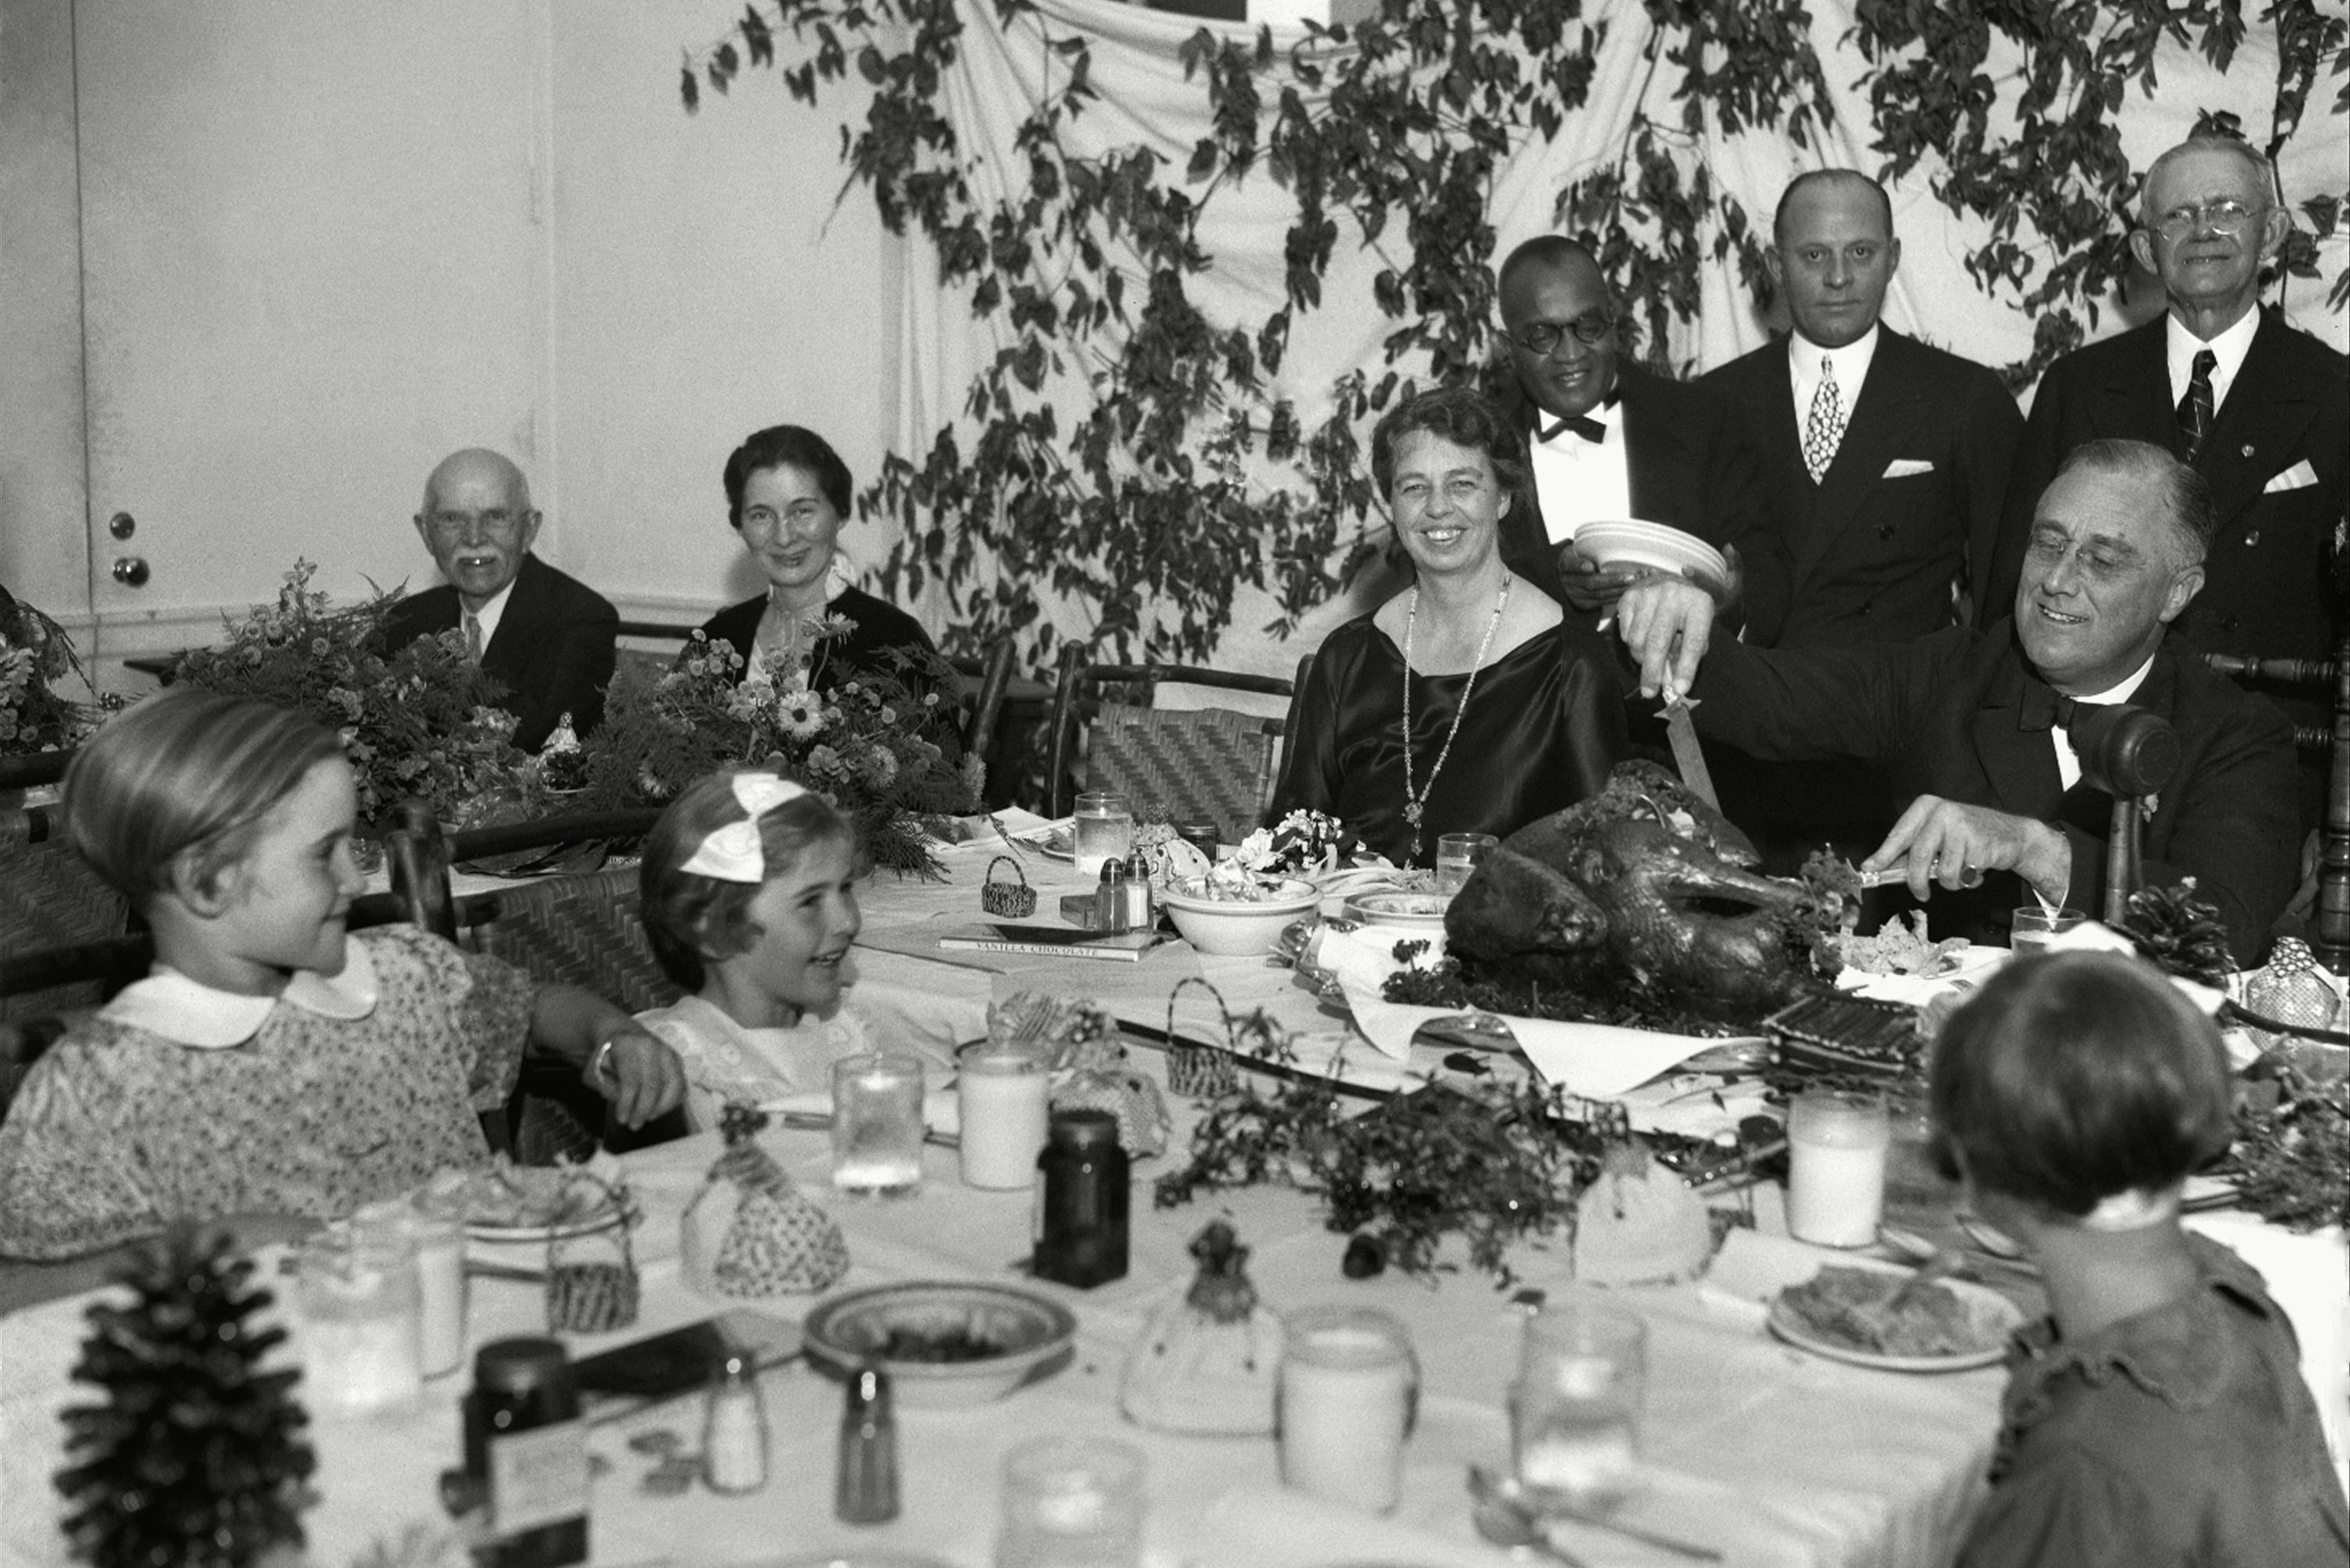 Mandatory Credit: Photo by AP/Shutterstock (6003359a) President Franklin D. Roosevelt carves the turkey during the annual Thanksgiving dinner for polio patients at Warm Springs, Ga., with first lady Eleanor Roosevelt smiling beside him FDR Carves Turkey 1933, Warm Springs, USA